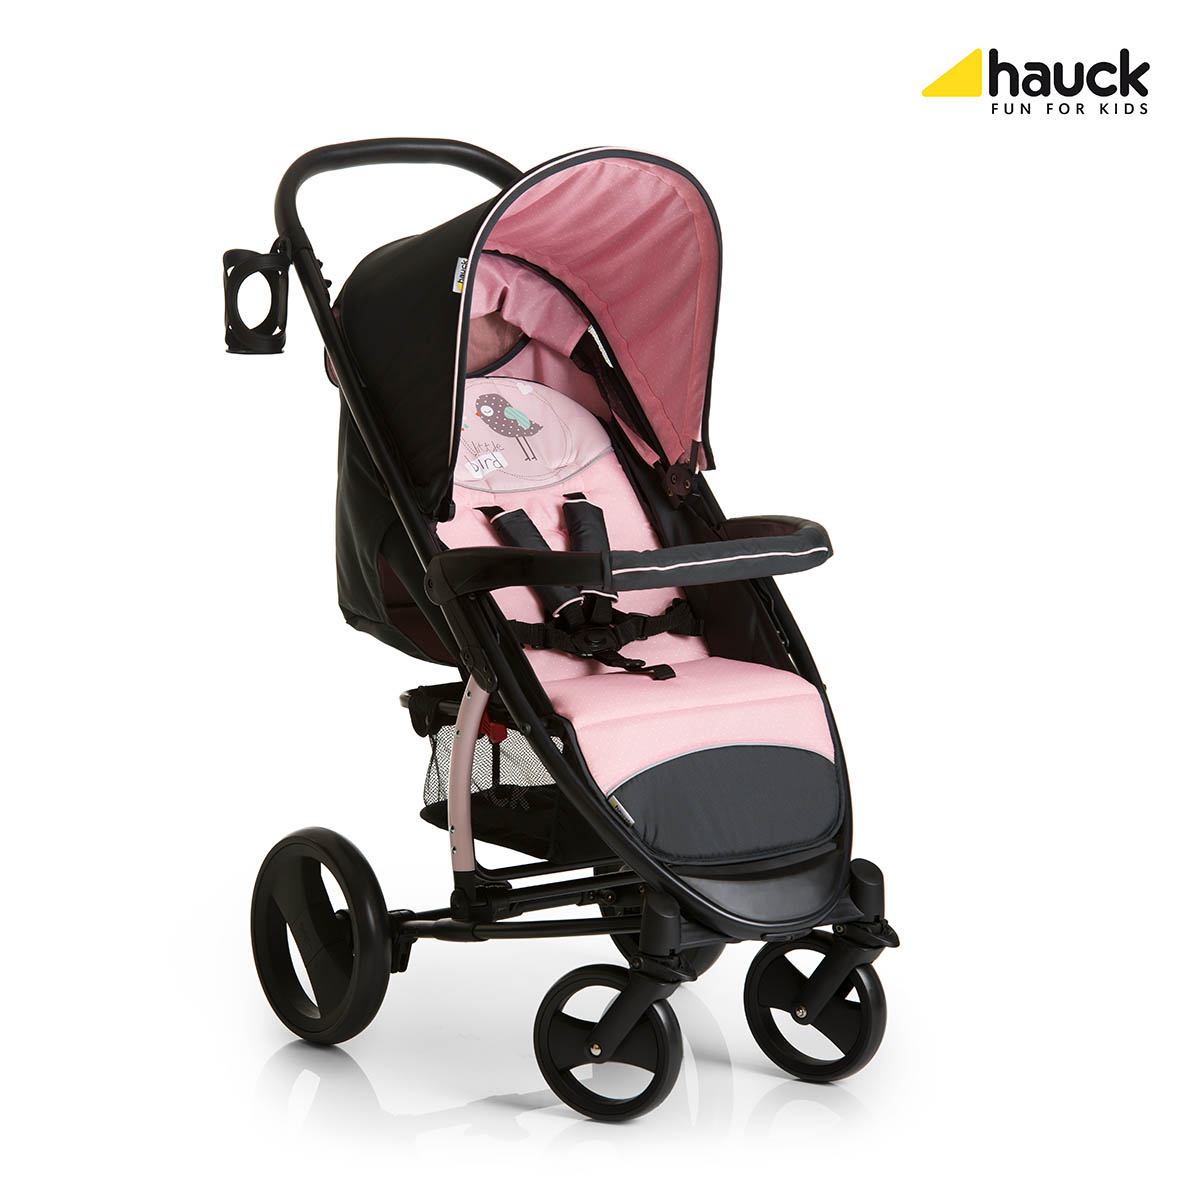 Hauck 3 In 1. hauck shopper trio 3 in 1 travel system smoke tango ... f47b37cfcc